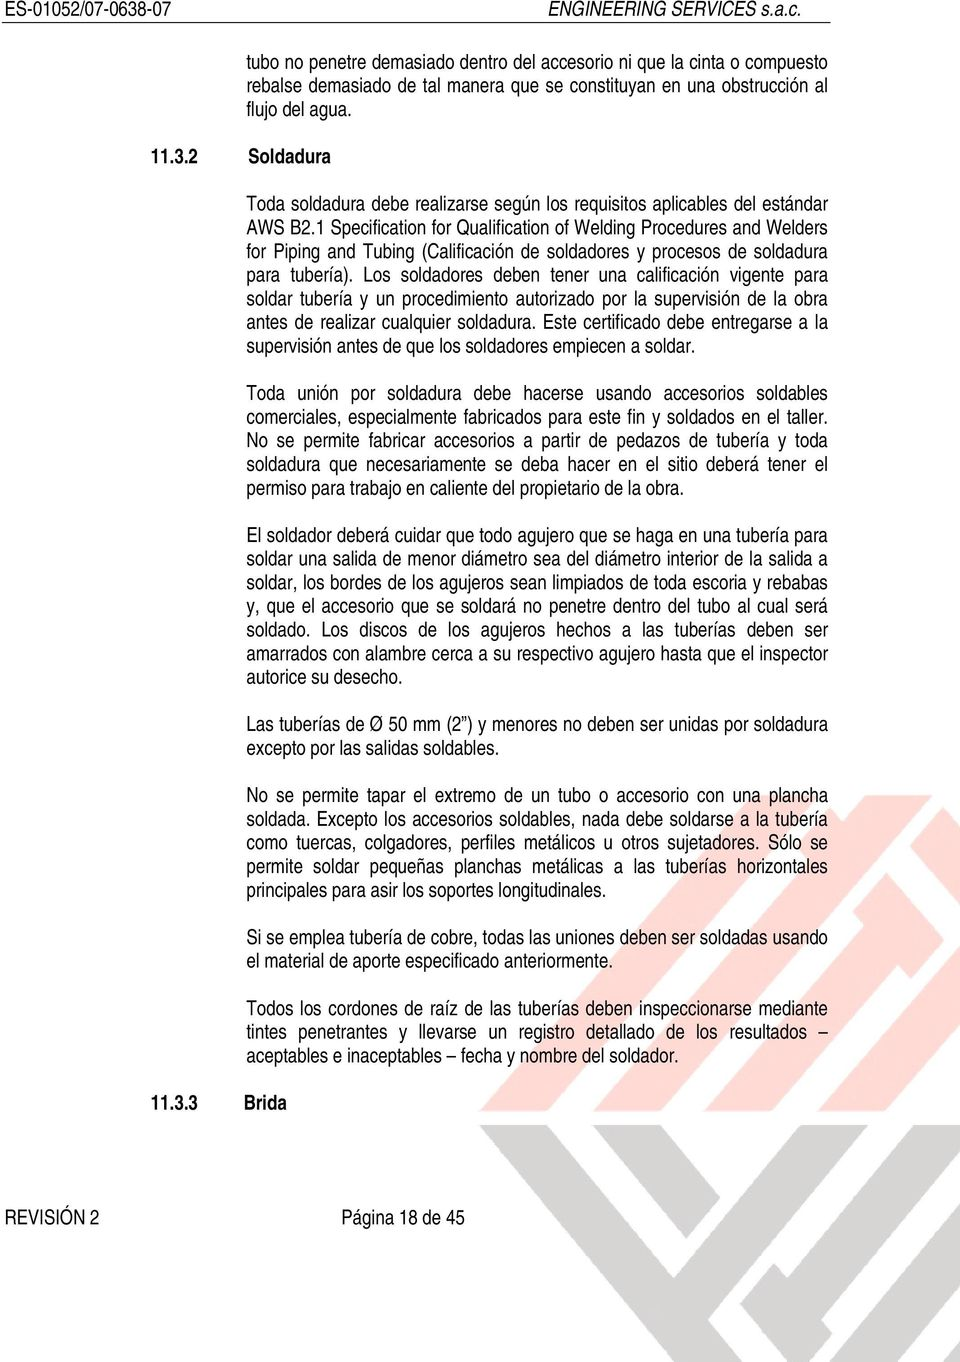 1 Specification for Qualification of Welding Procedures and Welders for Piping and Tubing (Calificación de soldadores y procesos de soldadura para tubería).